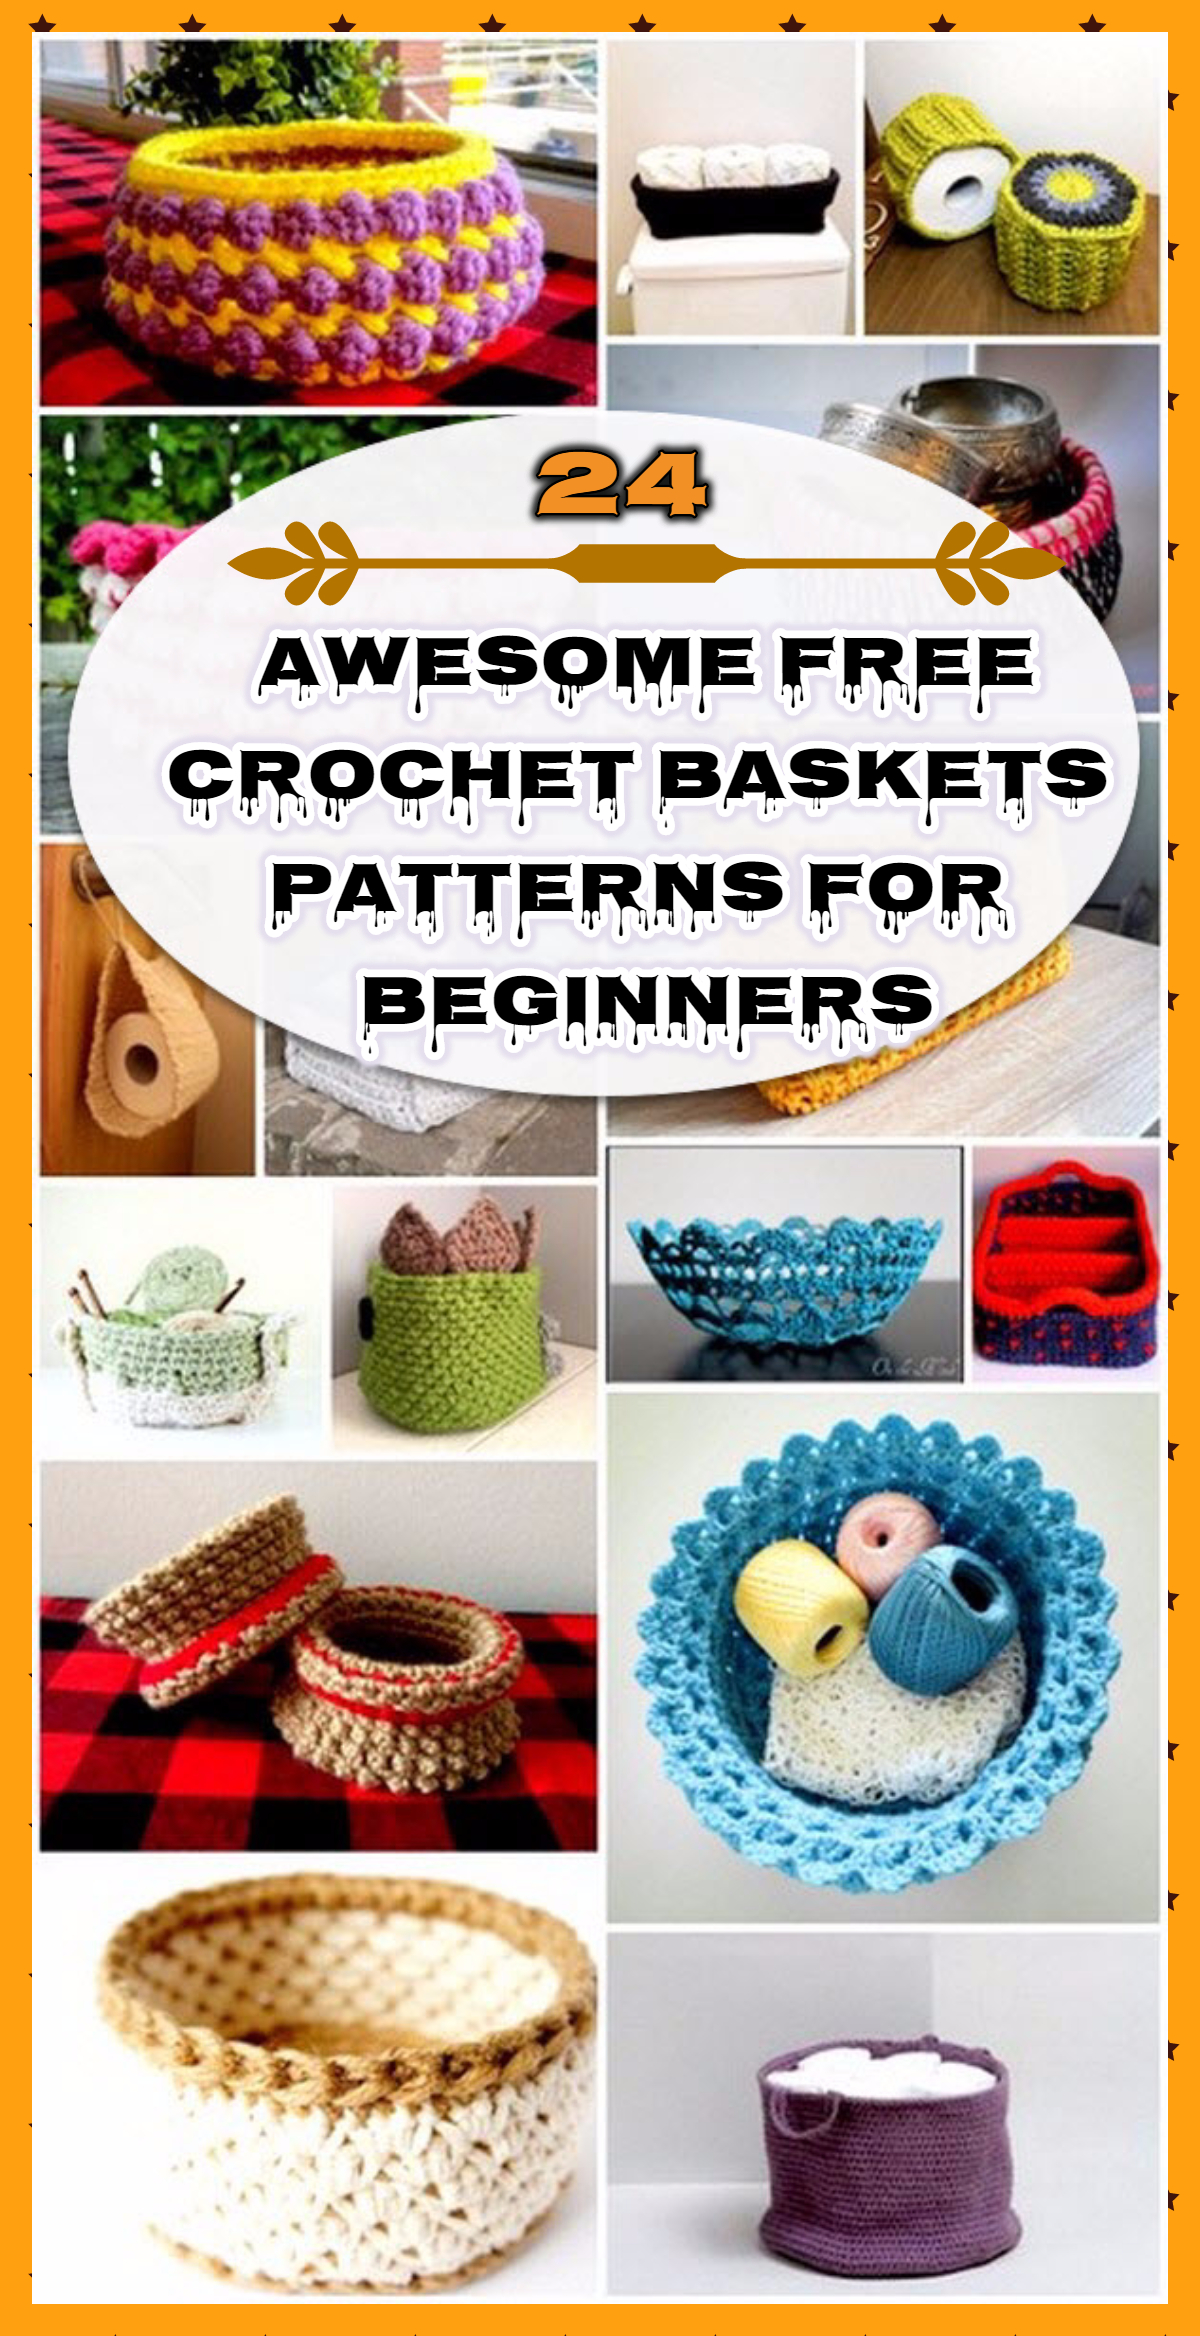 24 Awesome Free Crochet Baskets Patterns For Beginners